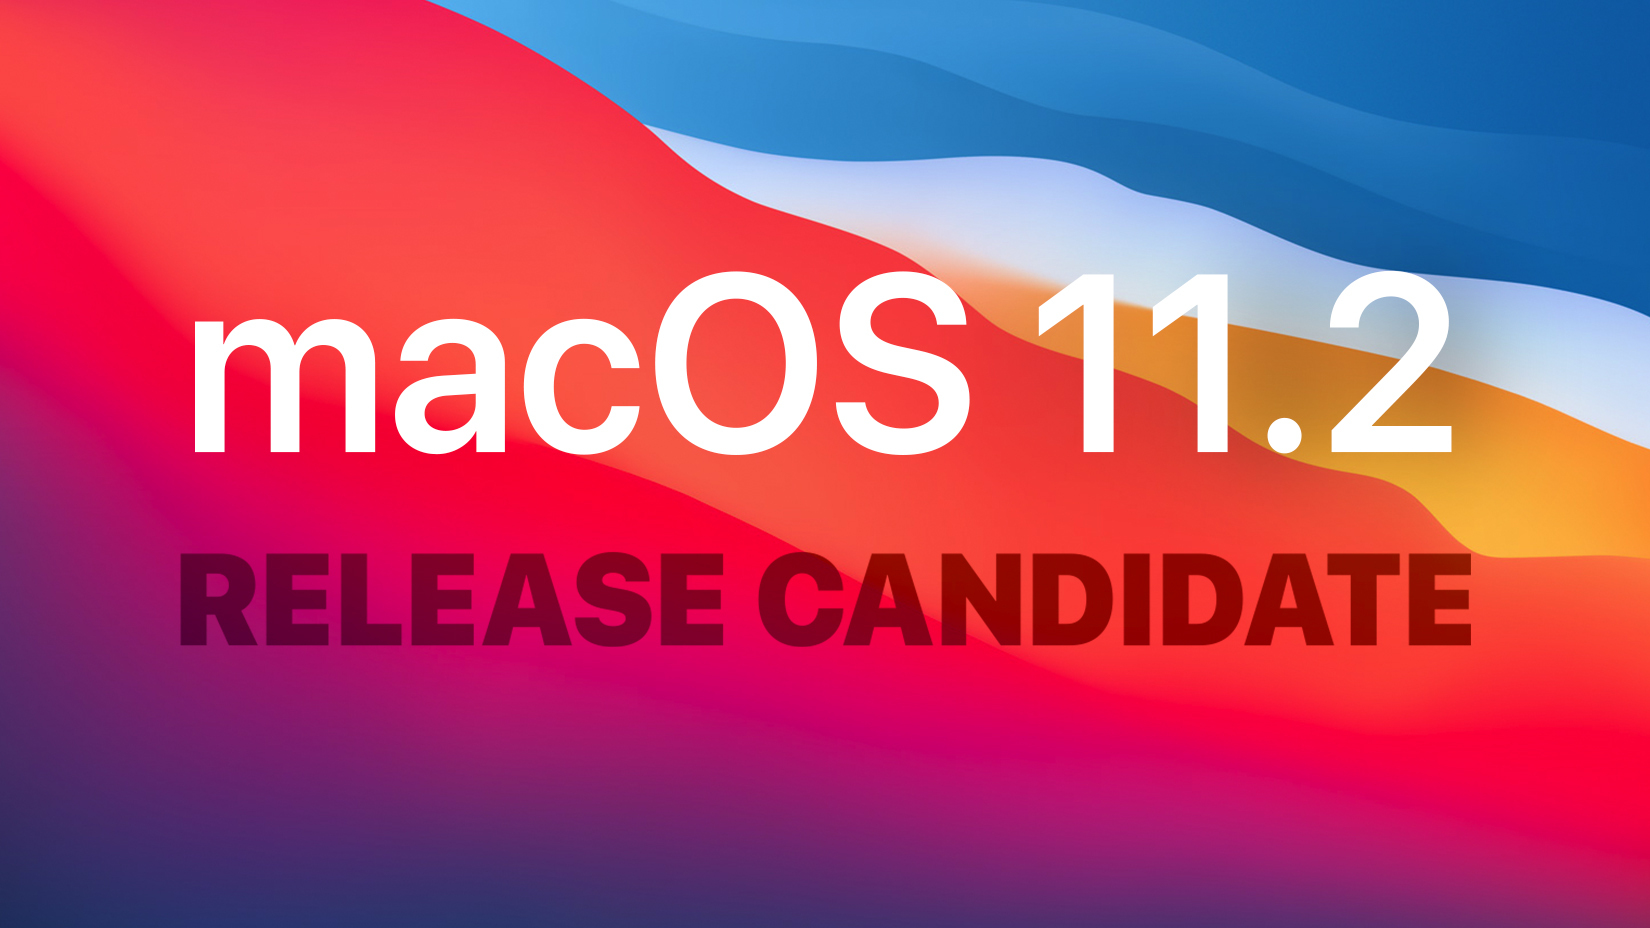 Apple Seeds Third Release Candidate Version of macOS Big Sur 11.2 to Developers